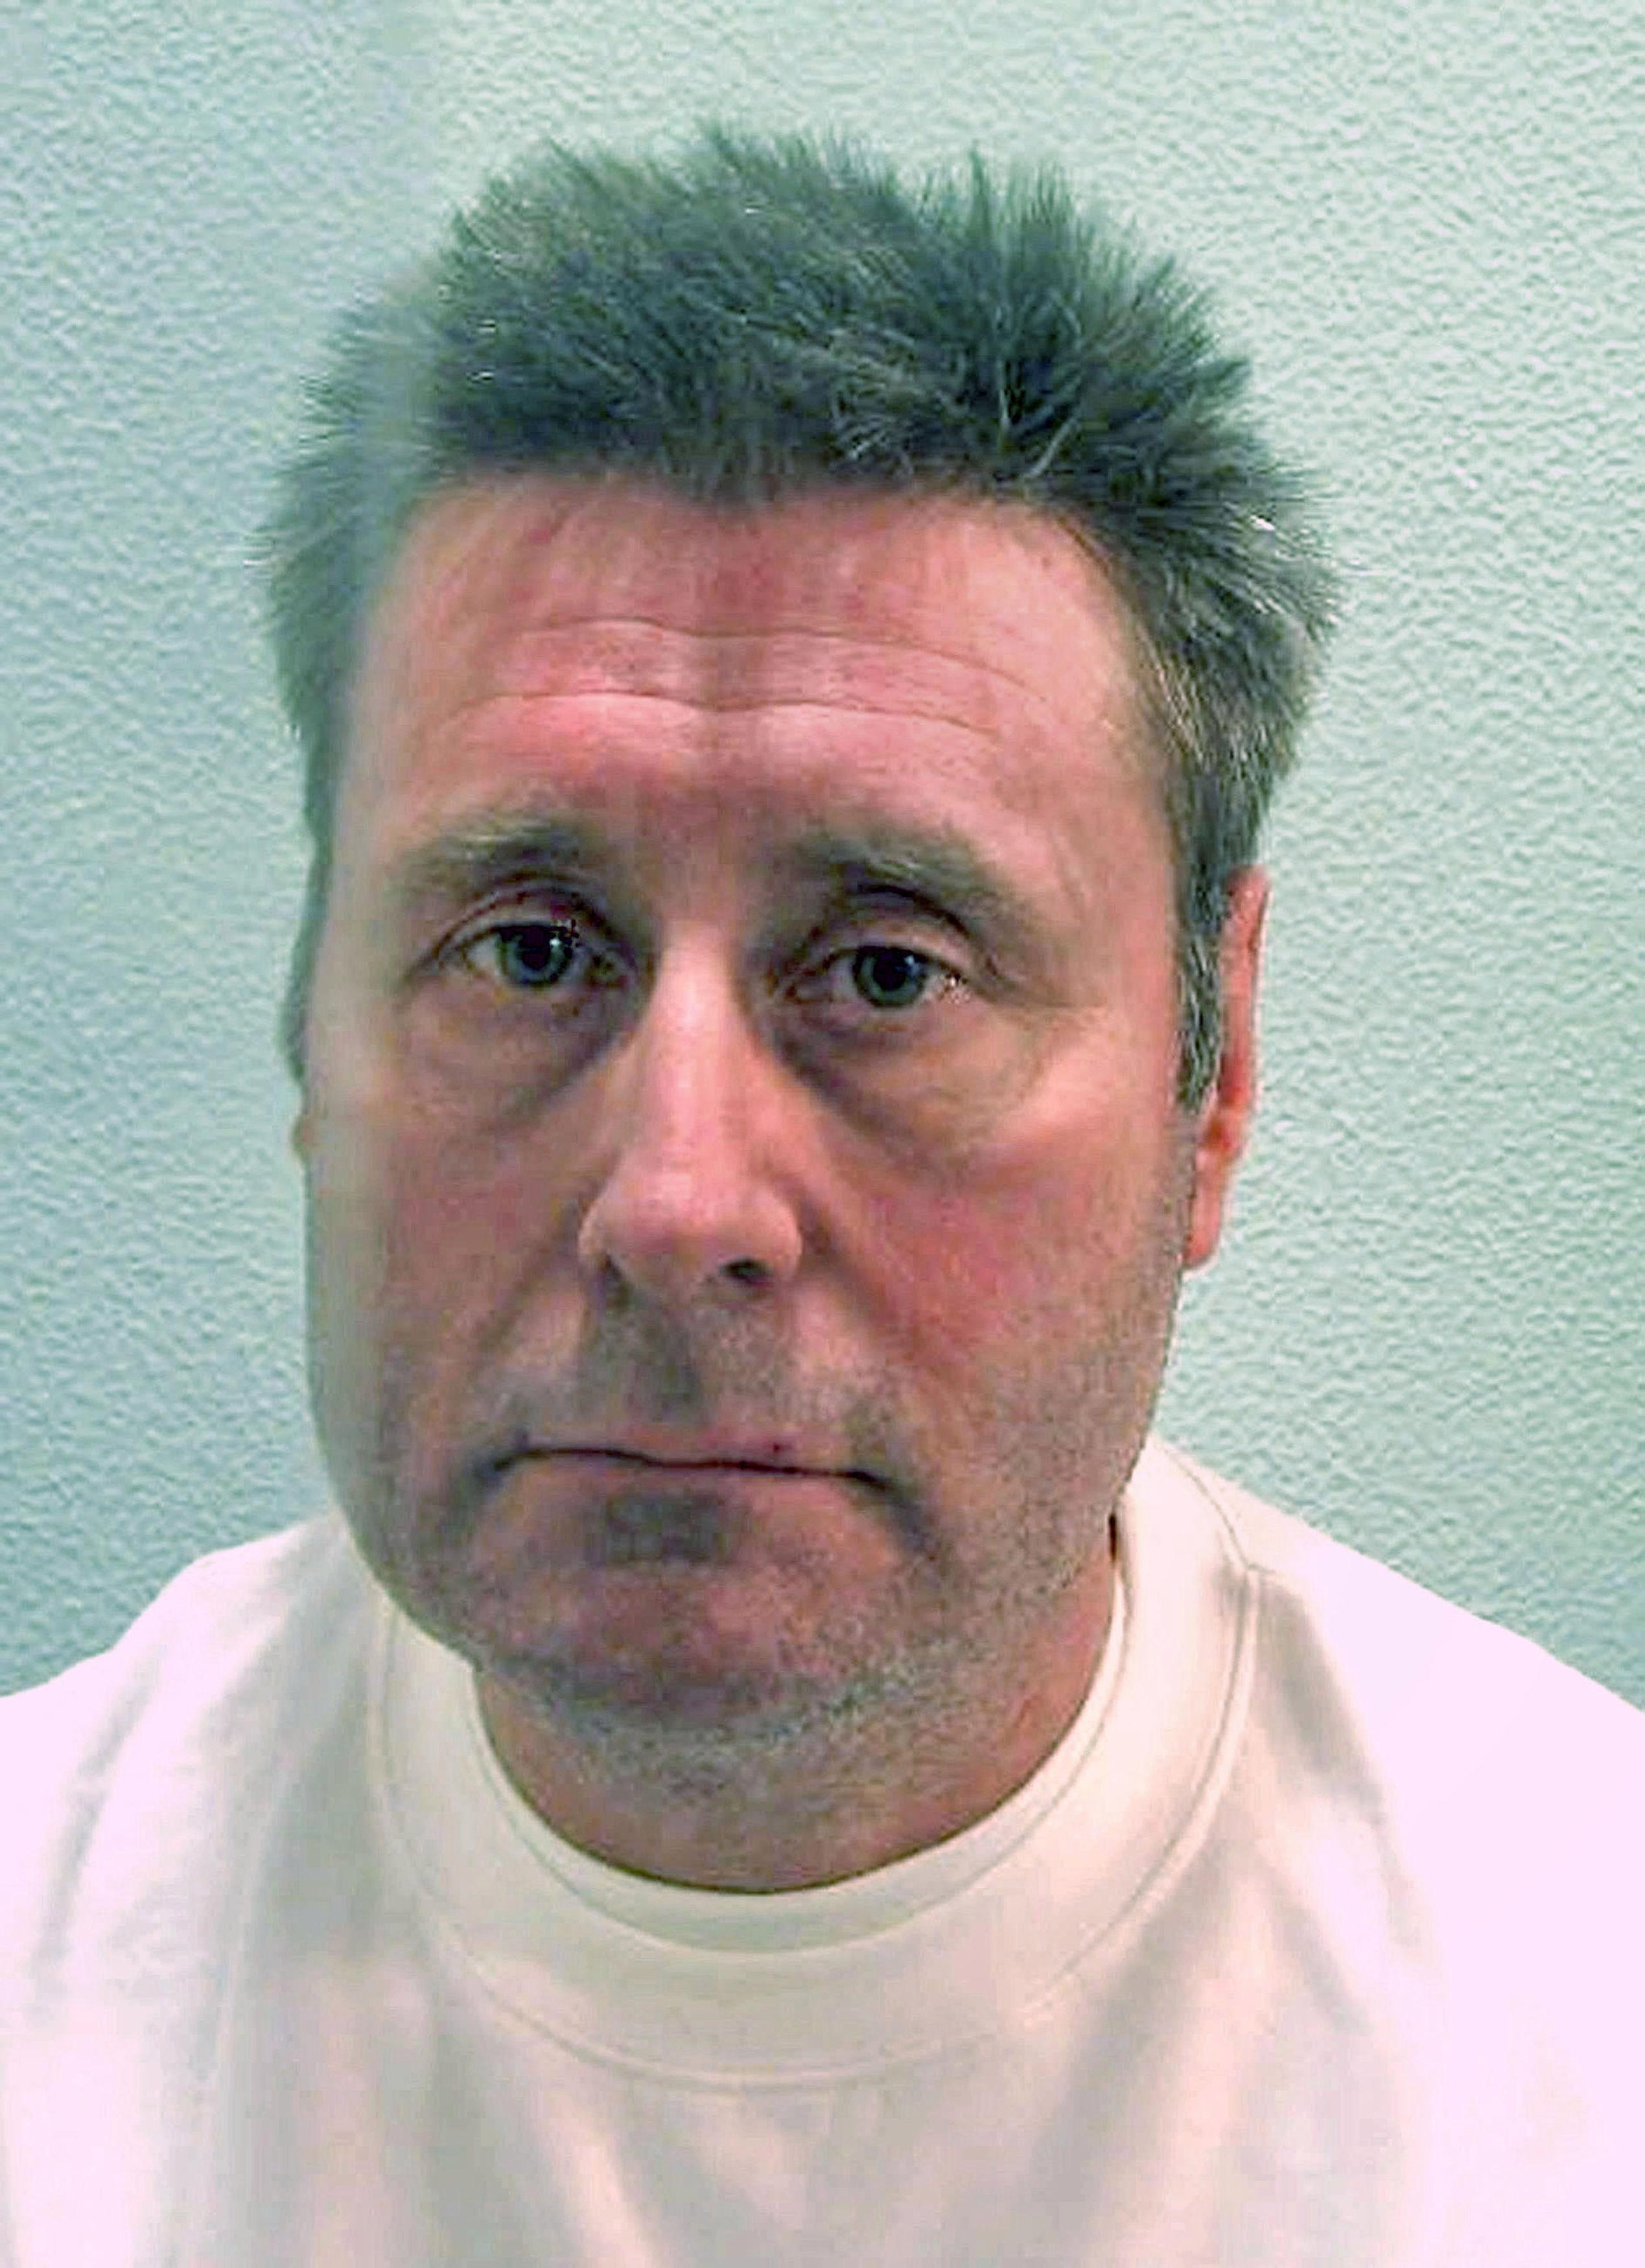 Rapist cabbie John Worboys won't EVER get taxi licence back when he's released from prison, Transport for London bosses confirm